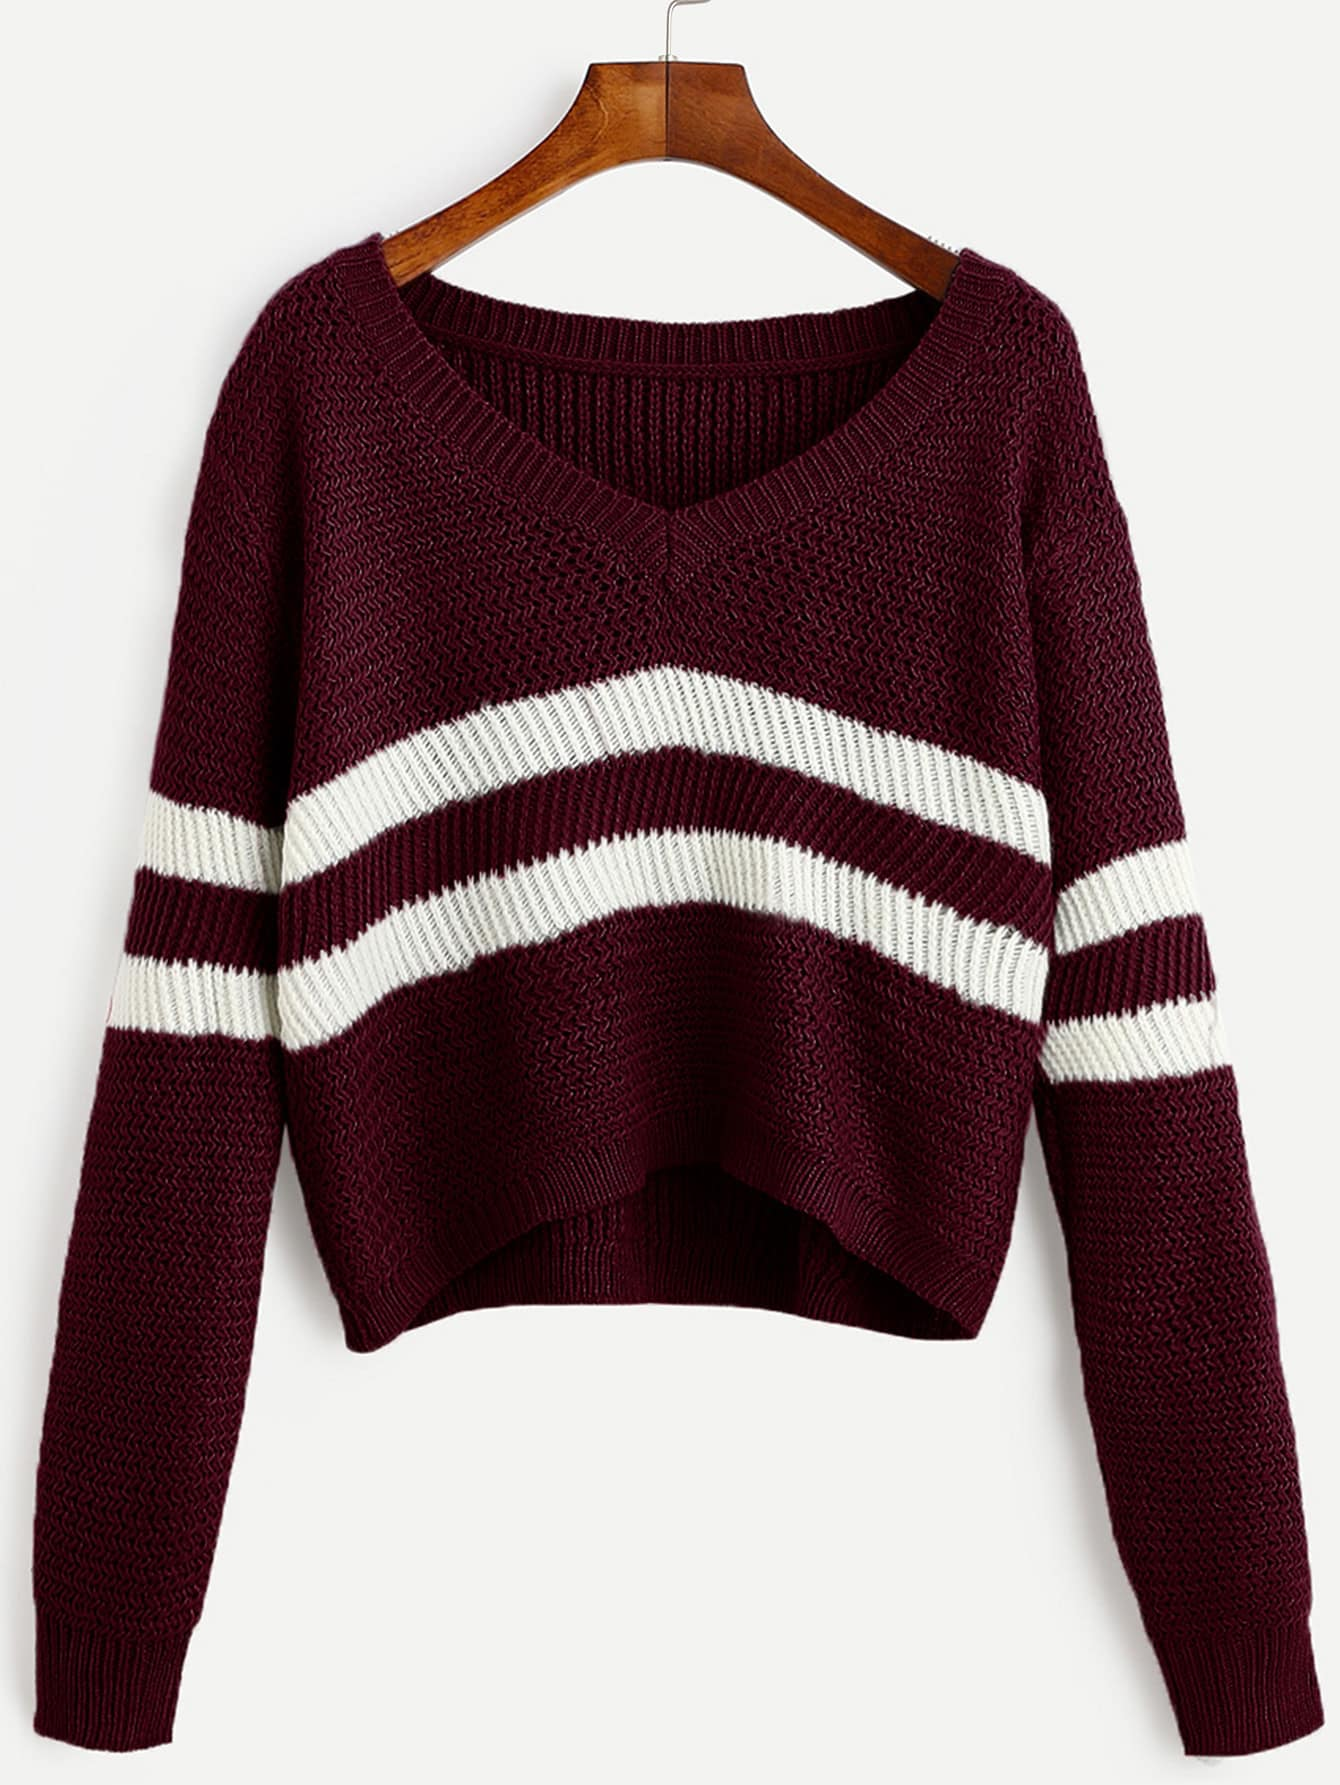 Blue and burgundy striped mens sweaters very